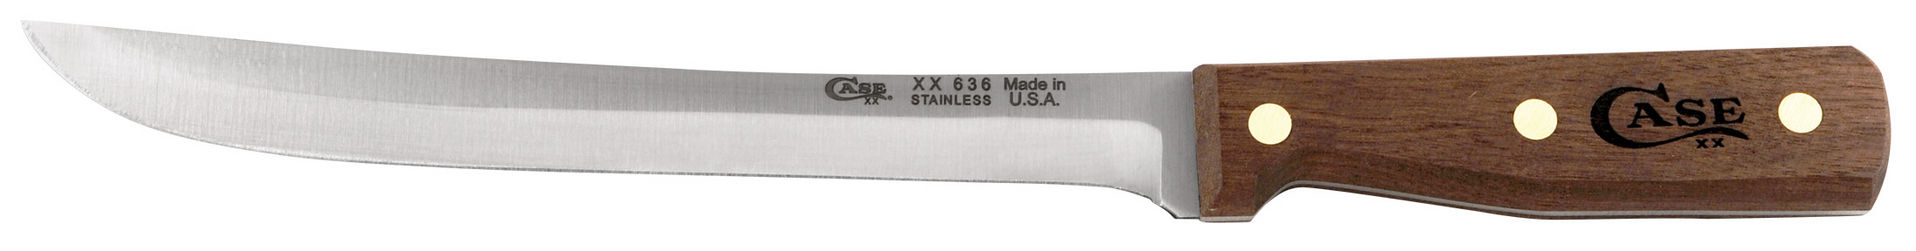 CASE XX KNIFE 7317 9-INCH SLICING KNIFE